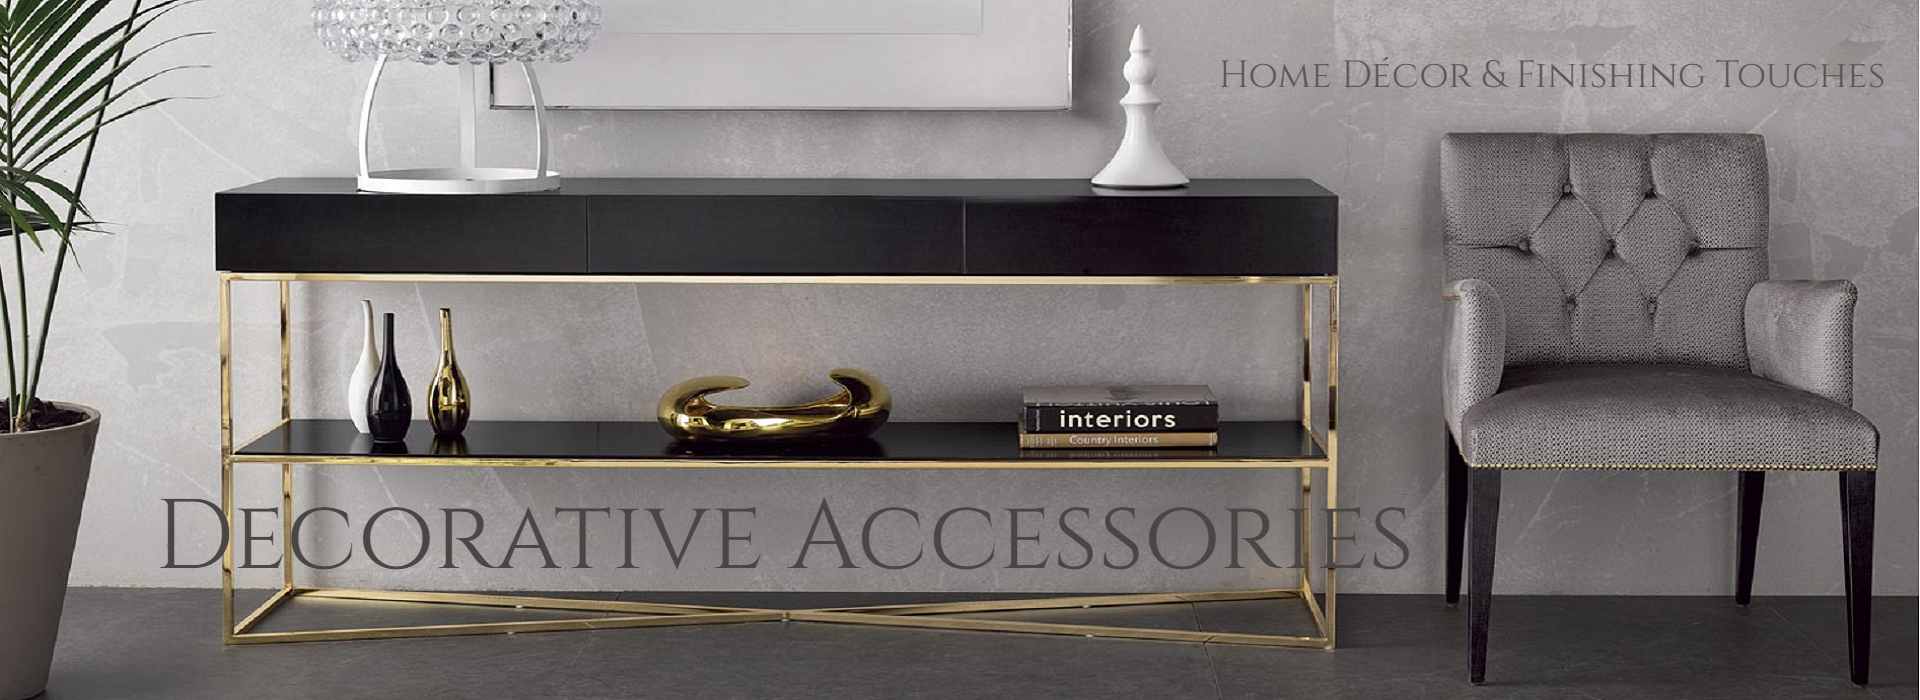 decorative accessories millmax interiors